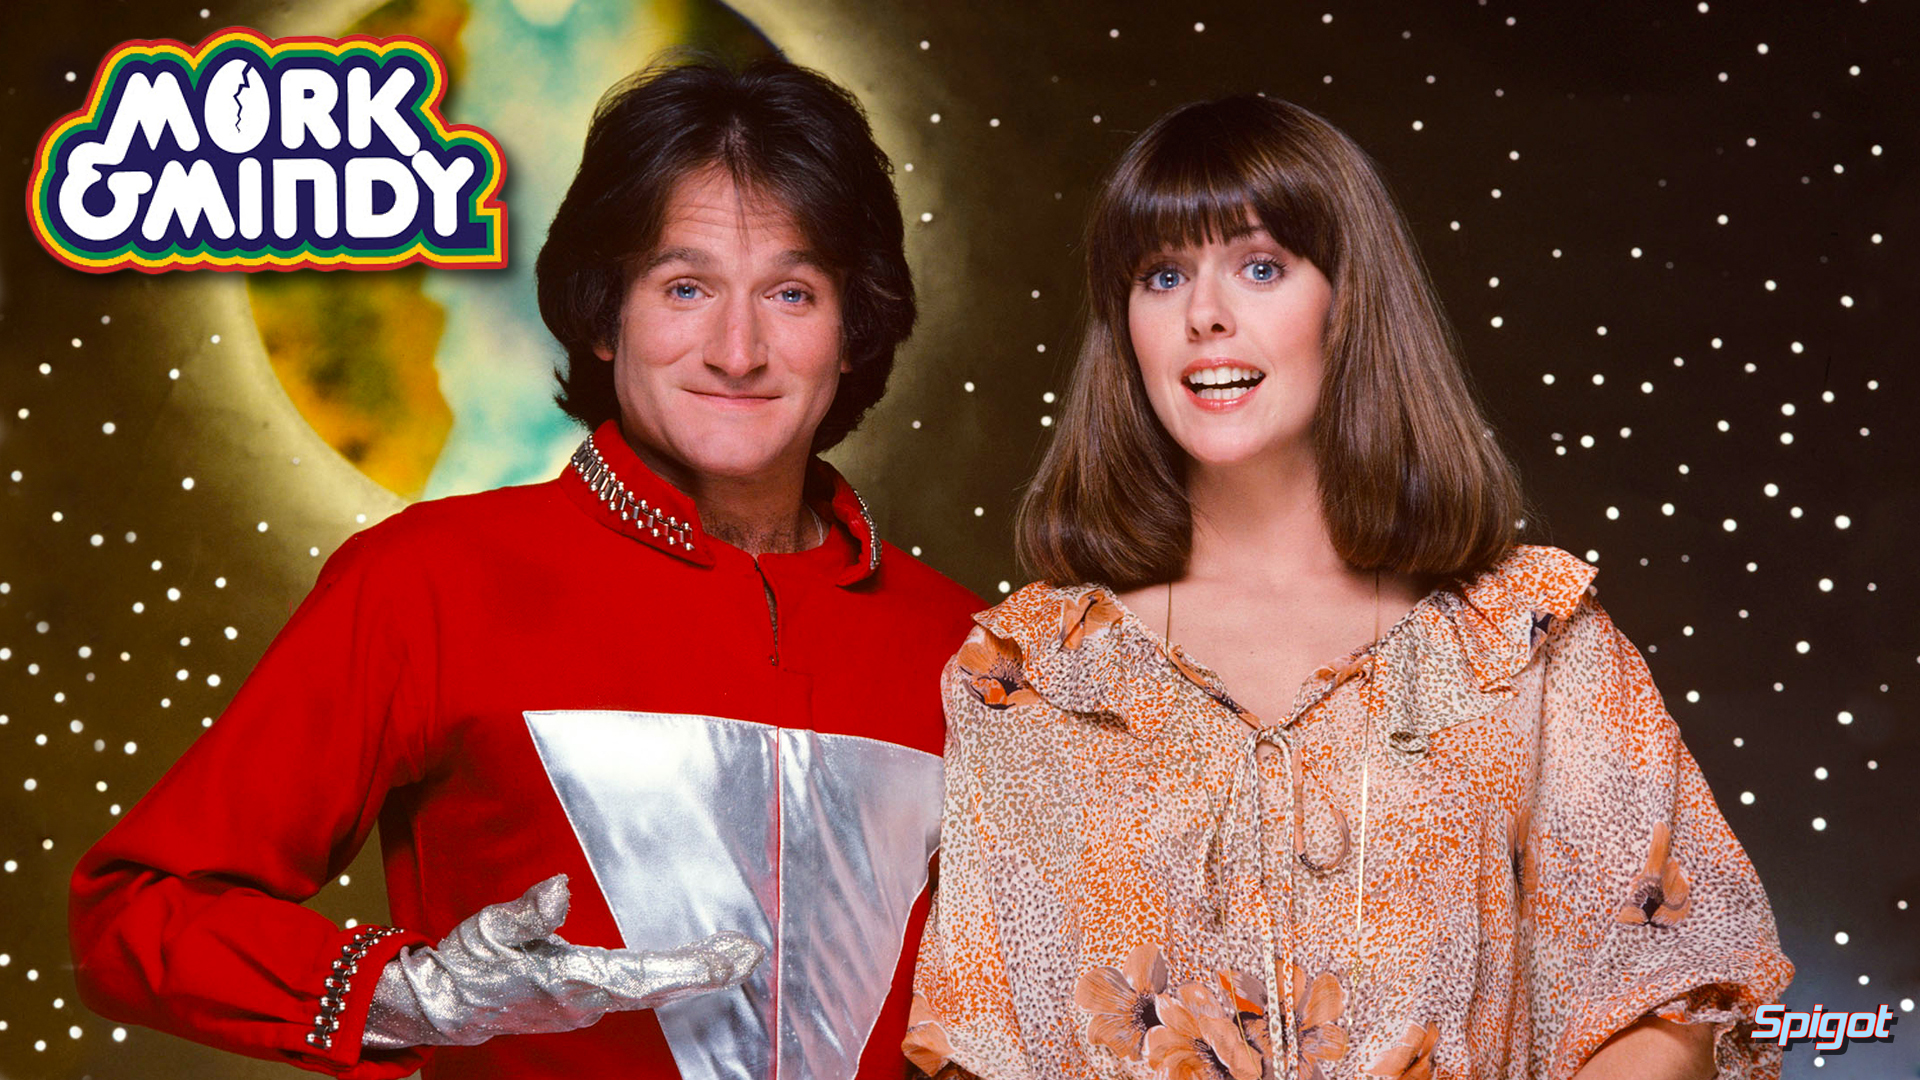 Mork & Mindy – SE1 – Ep7 -To Tell the Truth